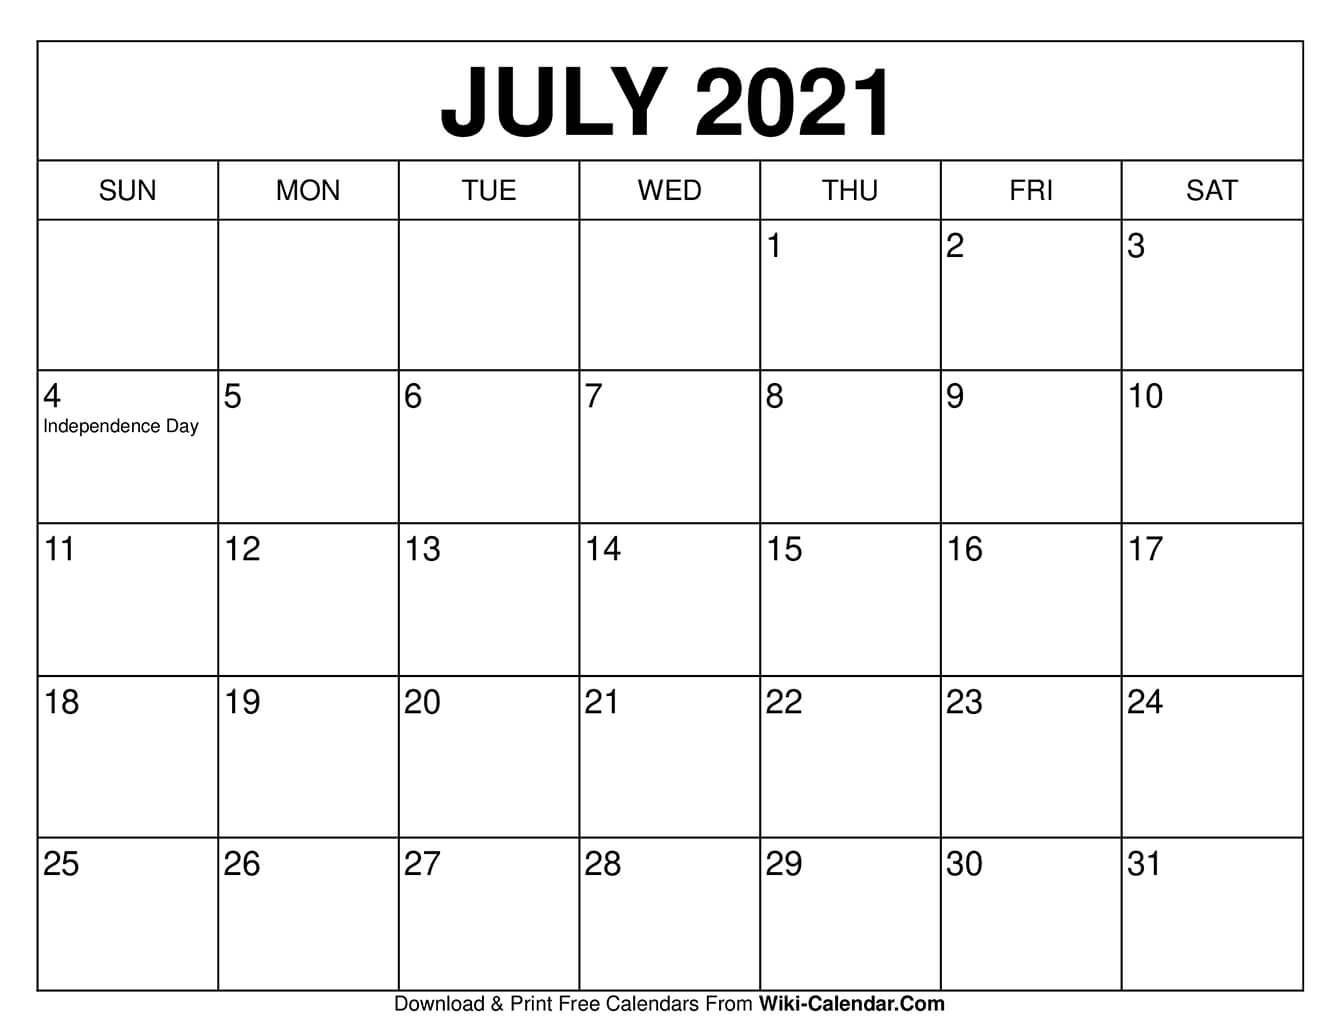 Blank Calendar 2021 July July 2021 Calendar in 2021 | Free calendars to print, Calendar